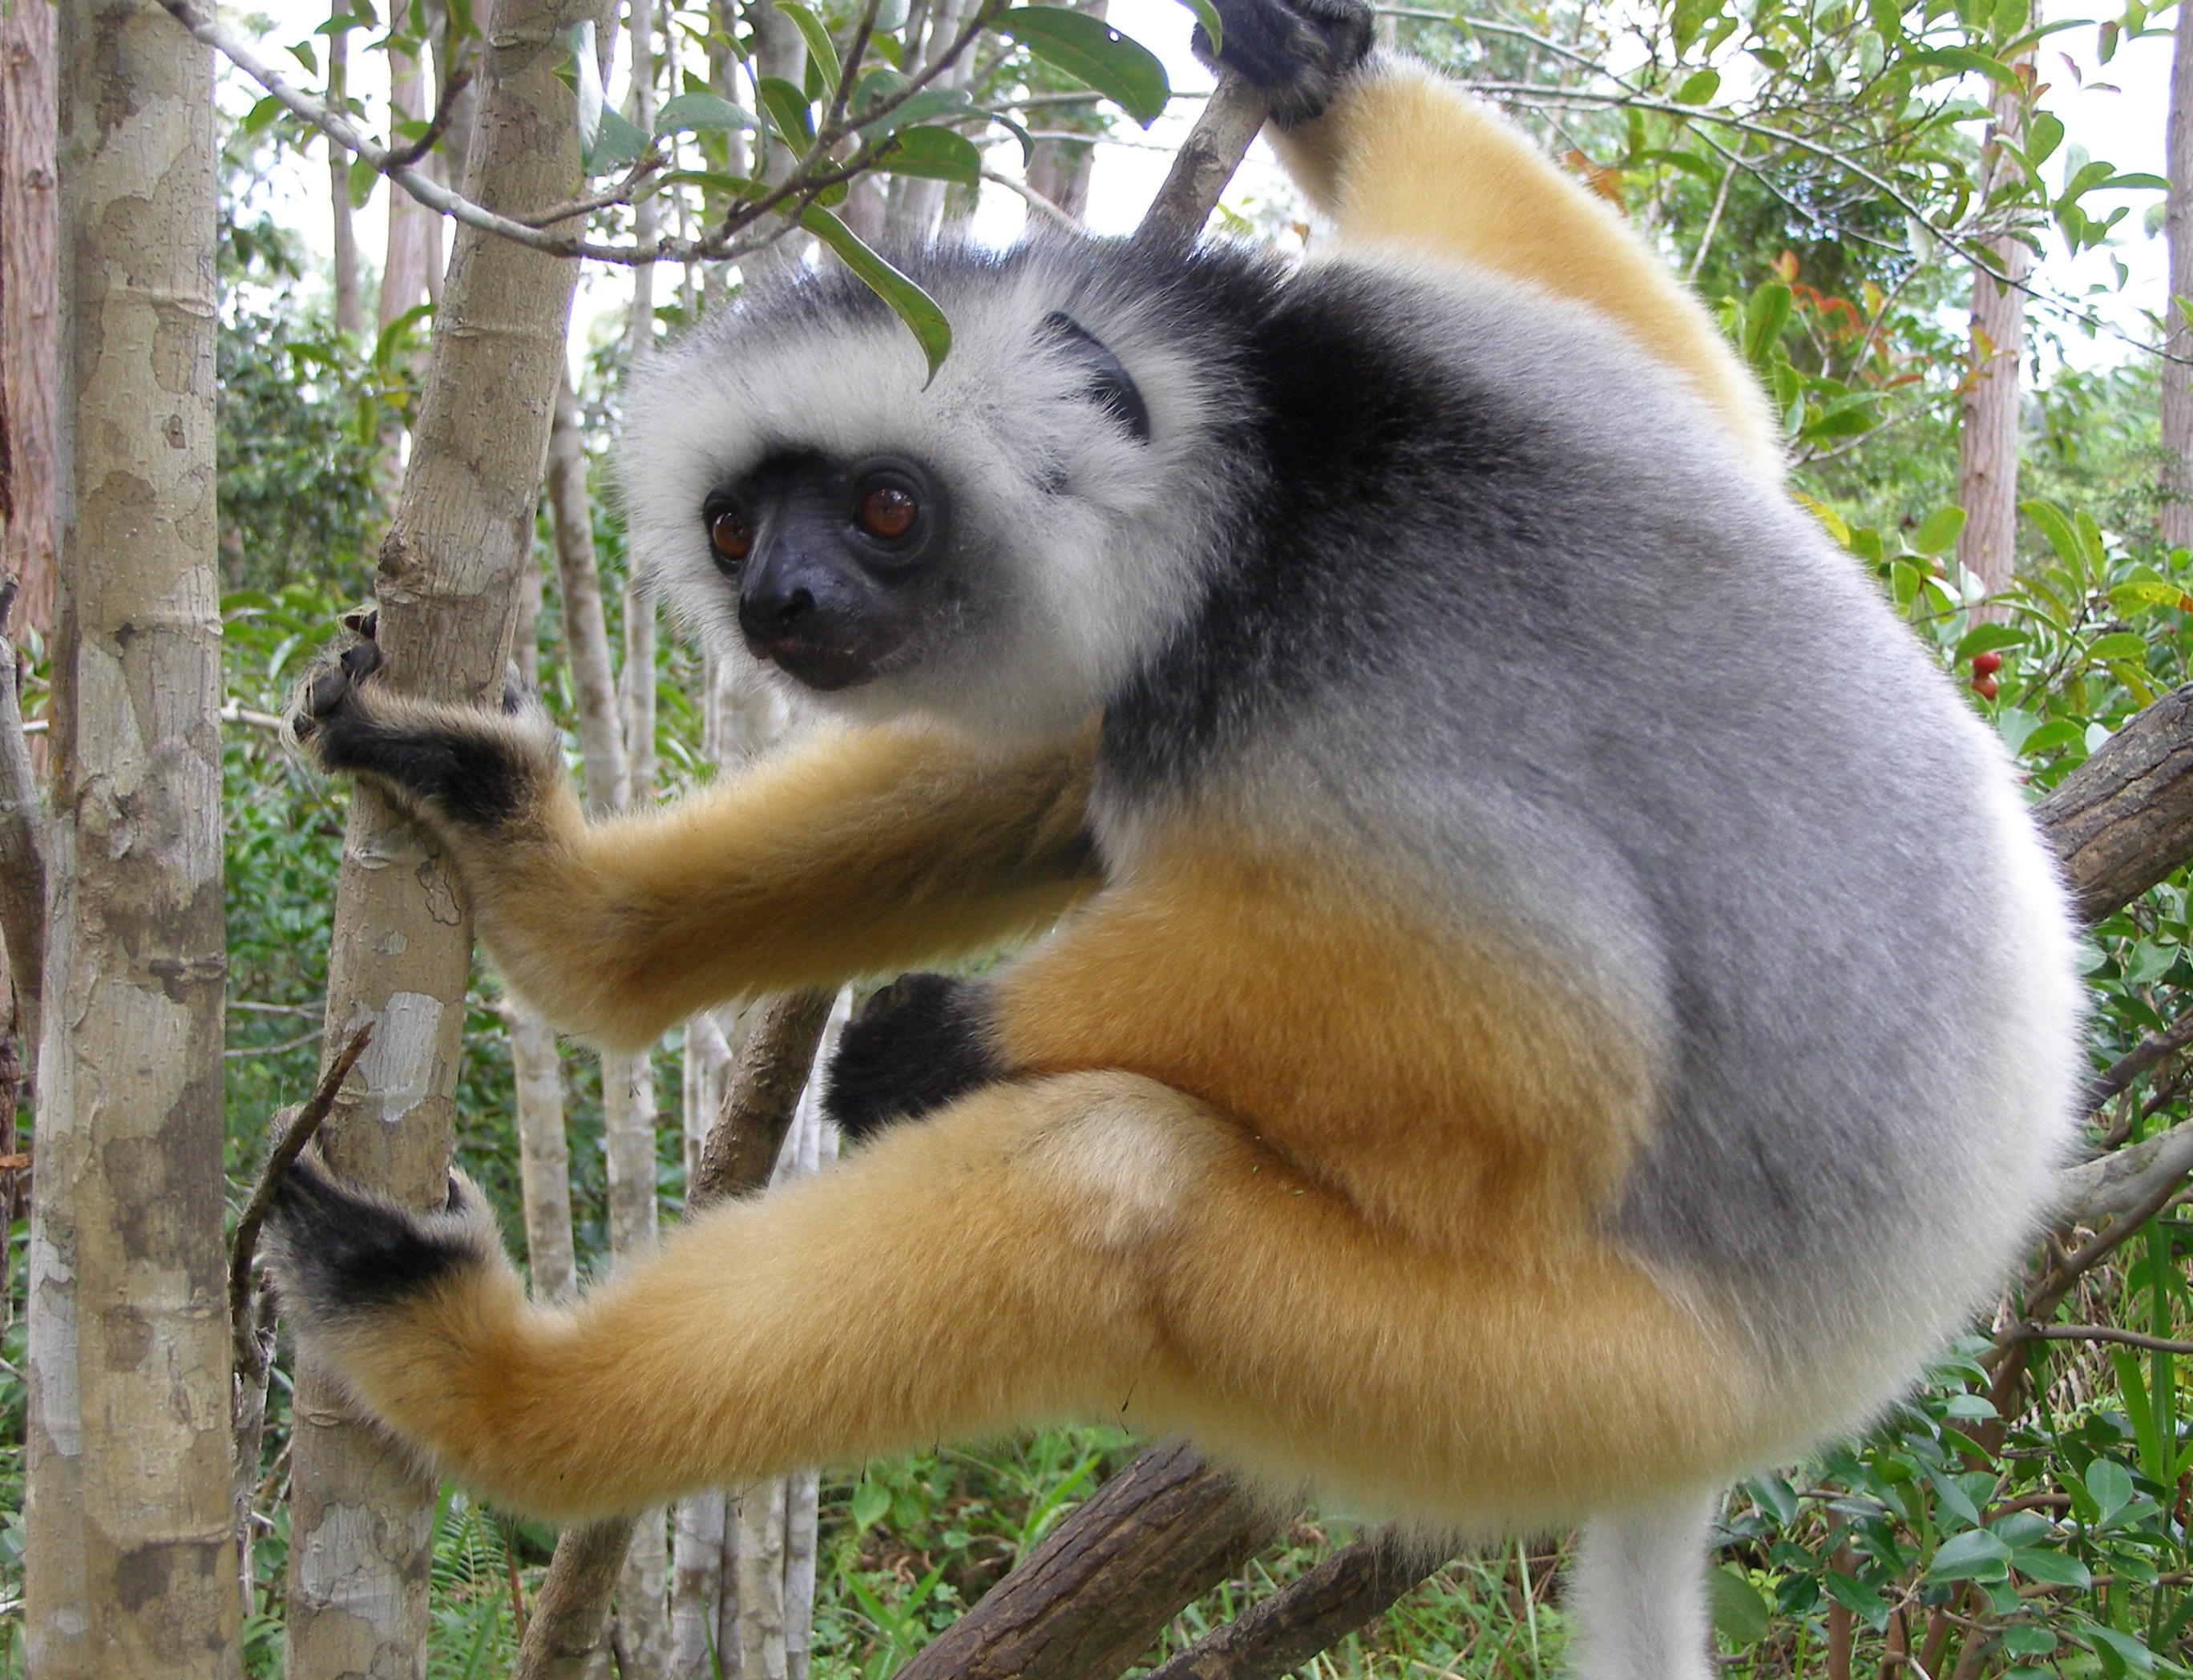 Diademed sifaka, a lemur that is a vertical clinger and leaper